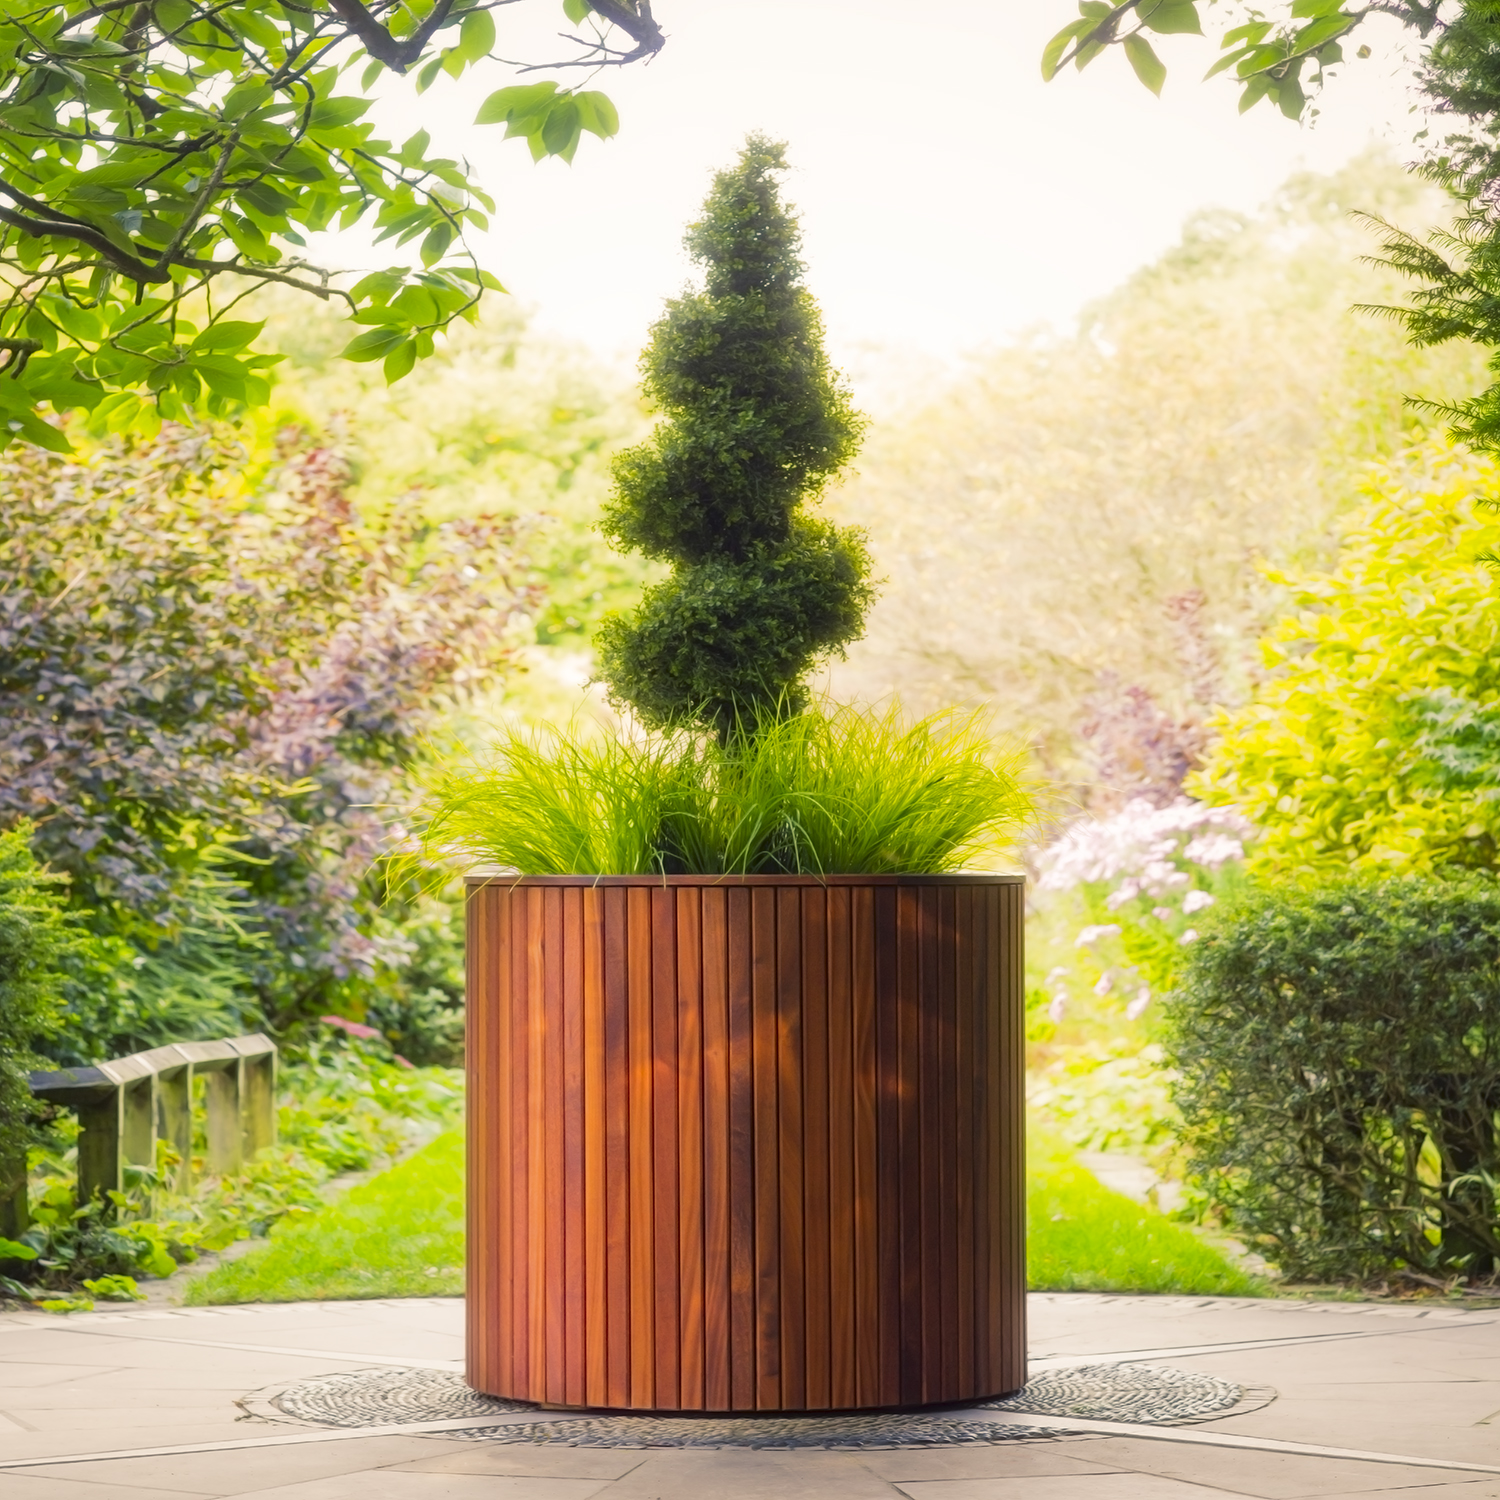 Timber Wooden Planters by Europlanters